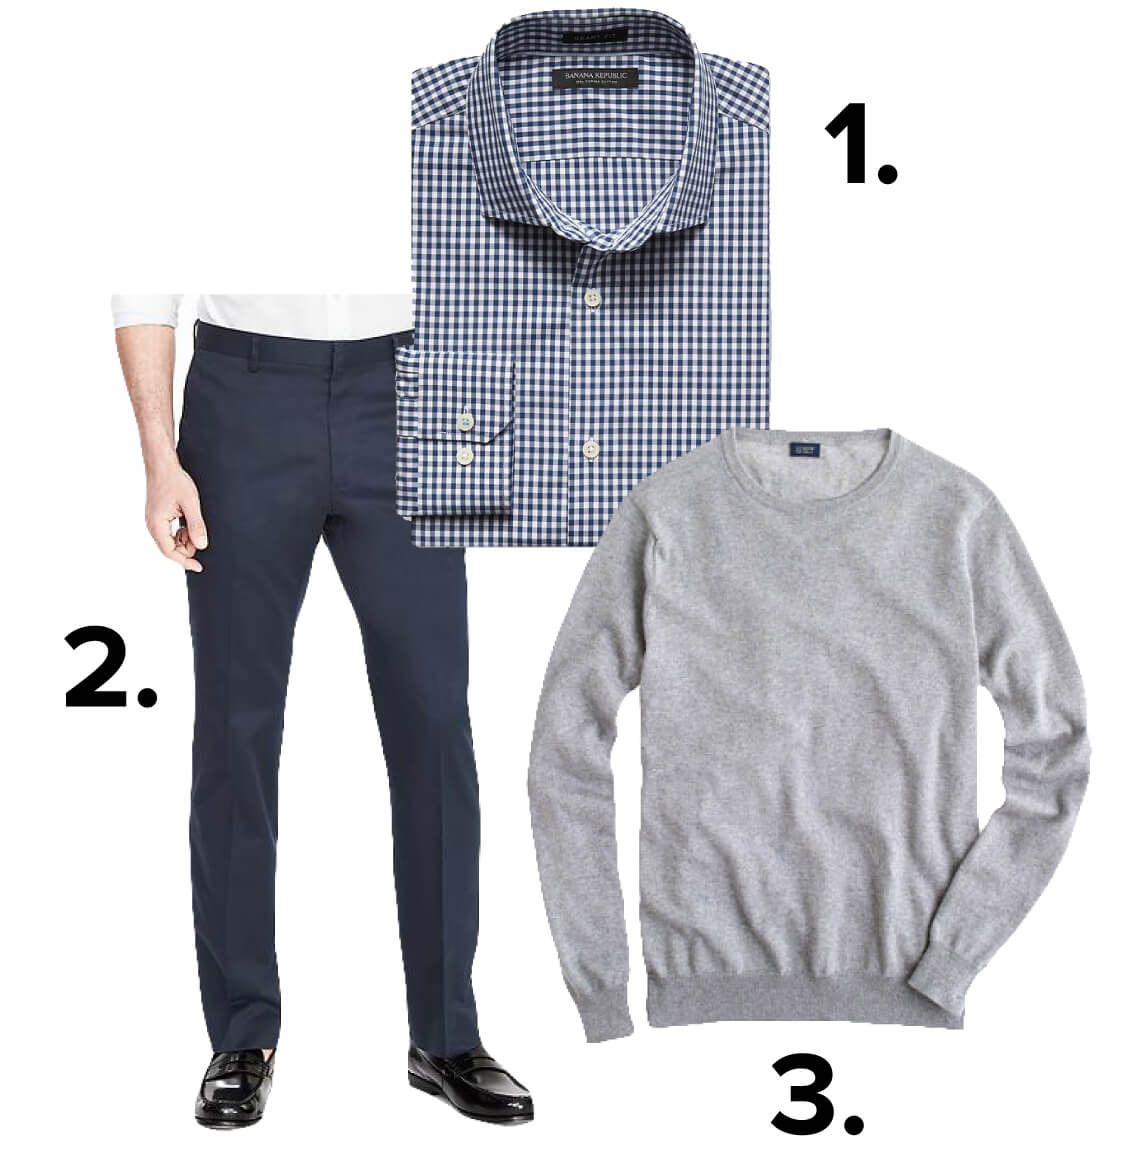 What to Wear for a Job Interview: How to Dress for the Best